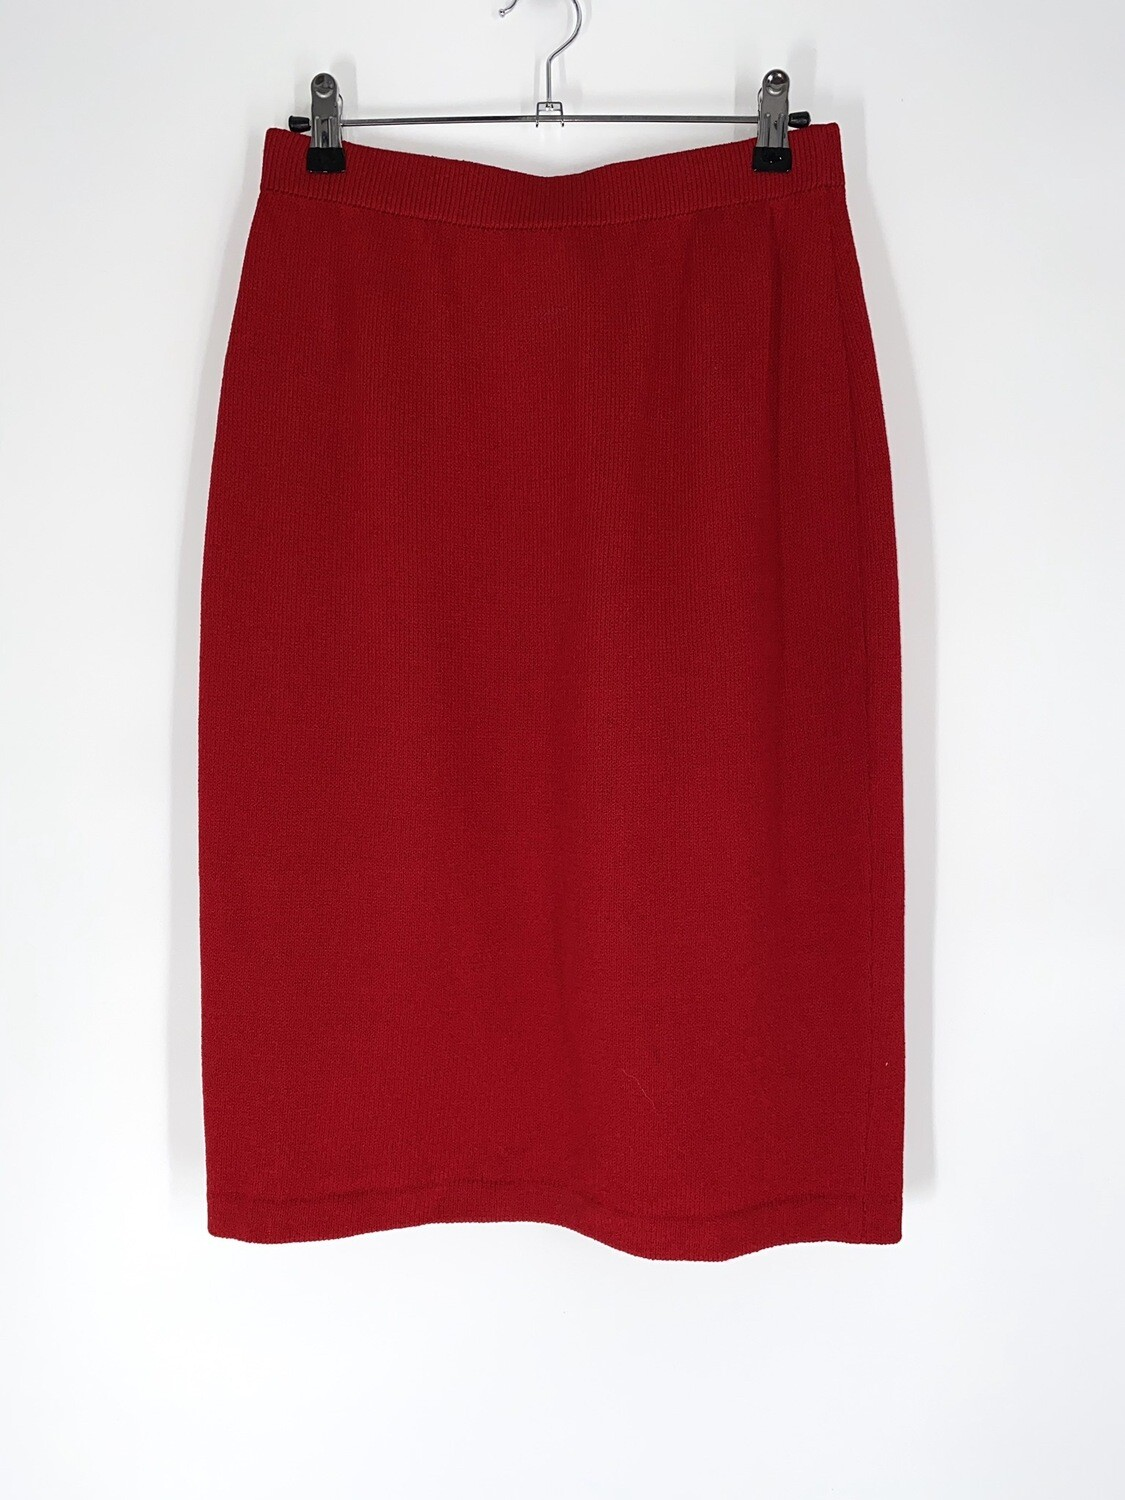 Red Knit Skirt Size S